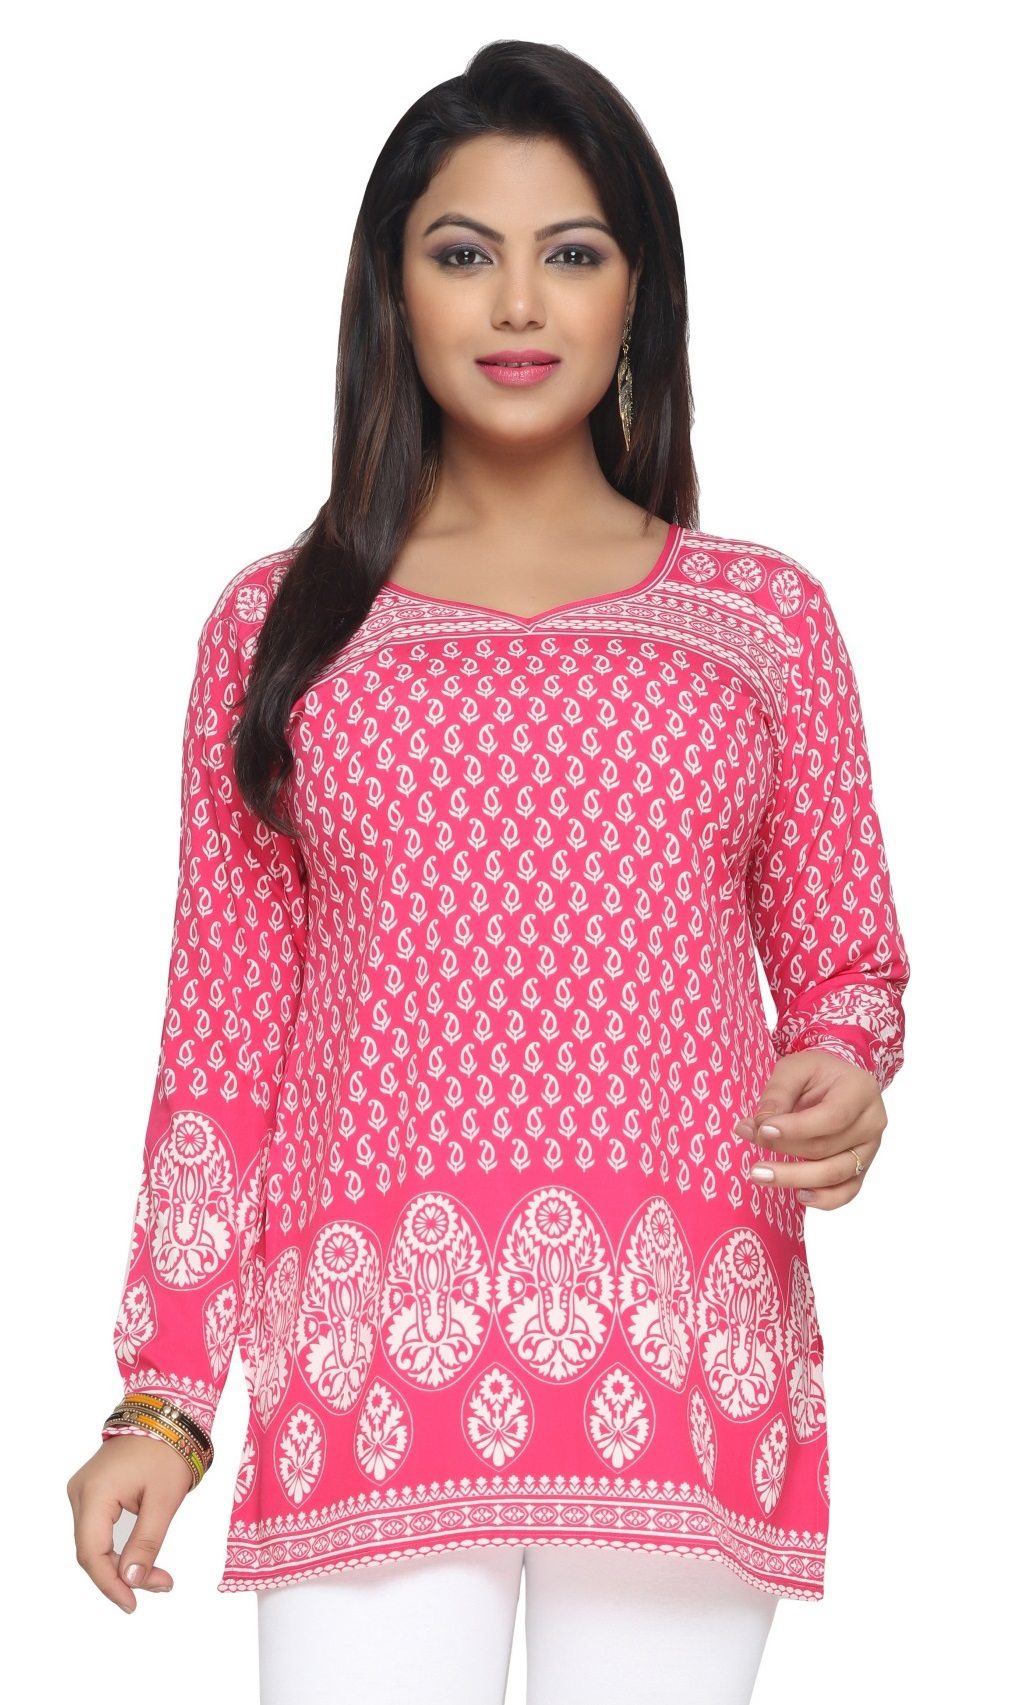 Women Indian Short Kurti Tunic Top Dress EVENT142B